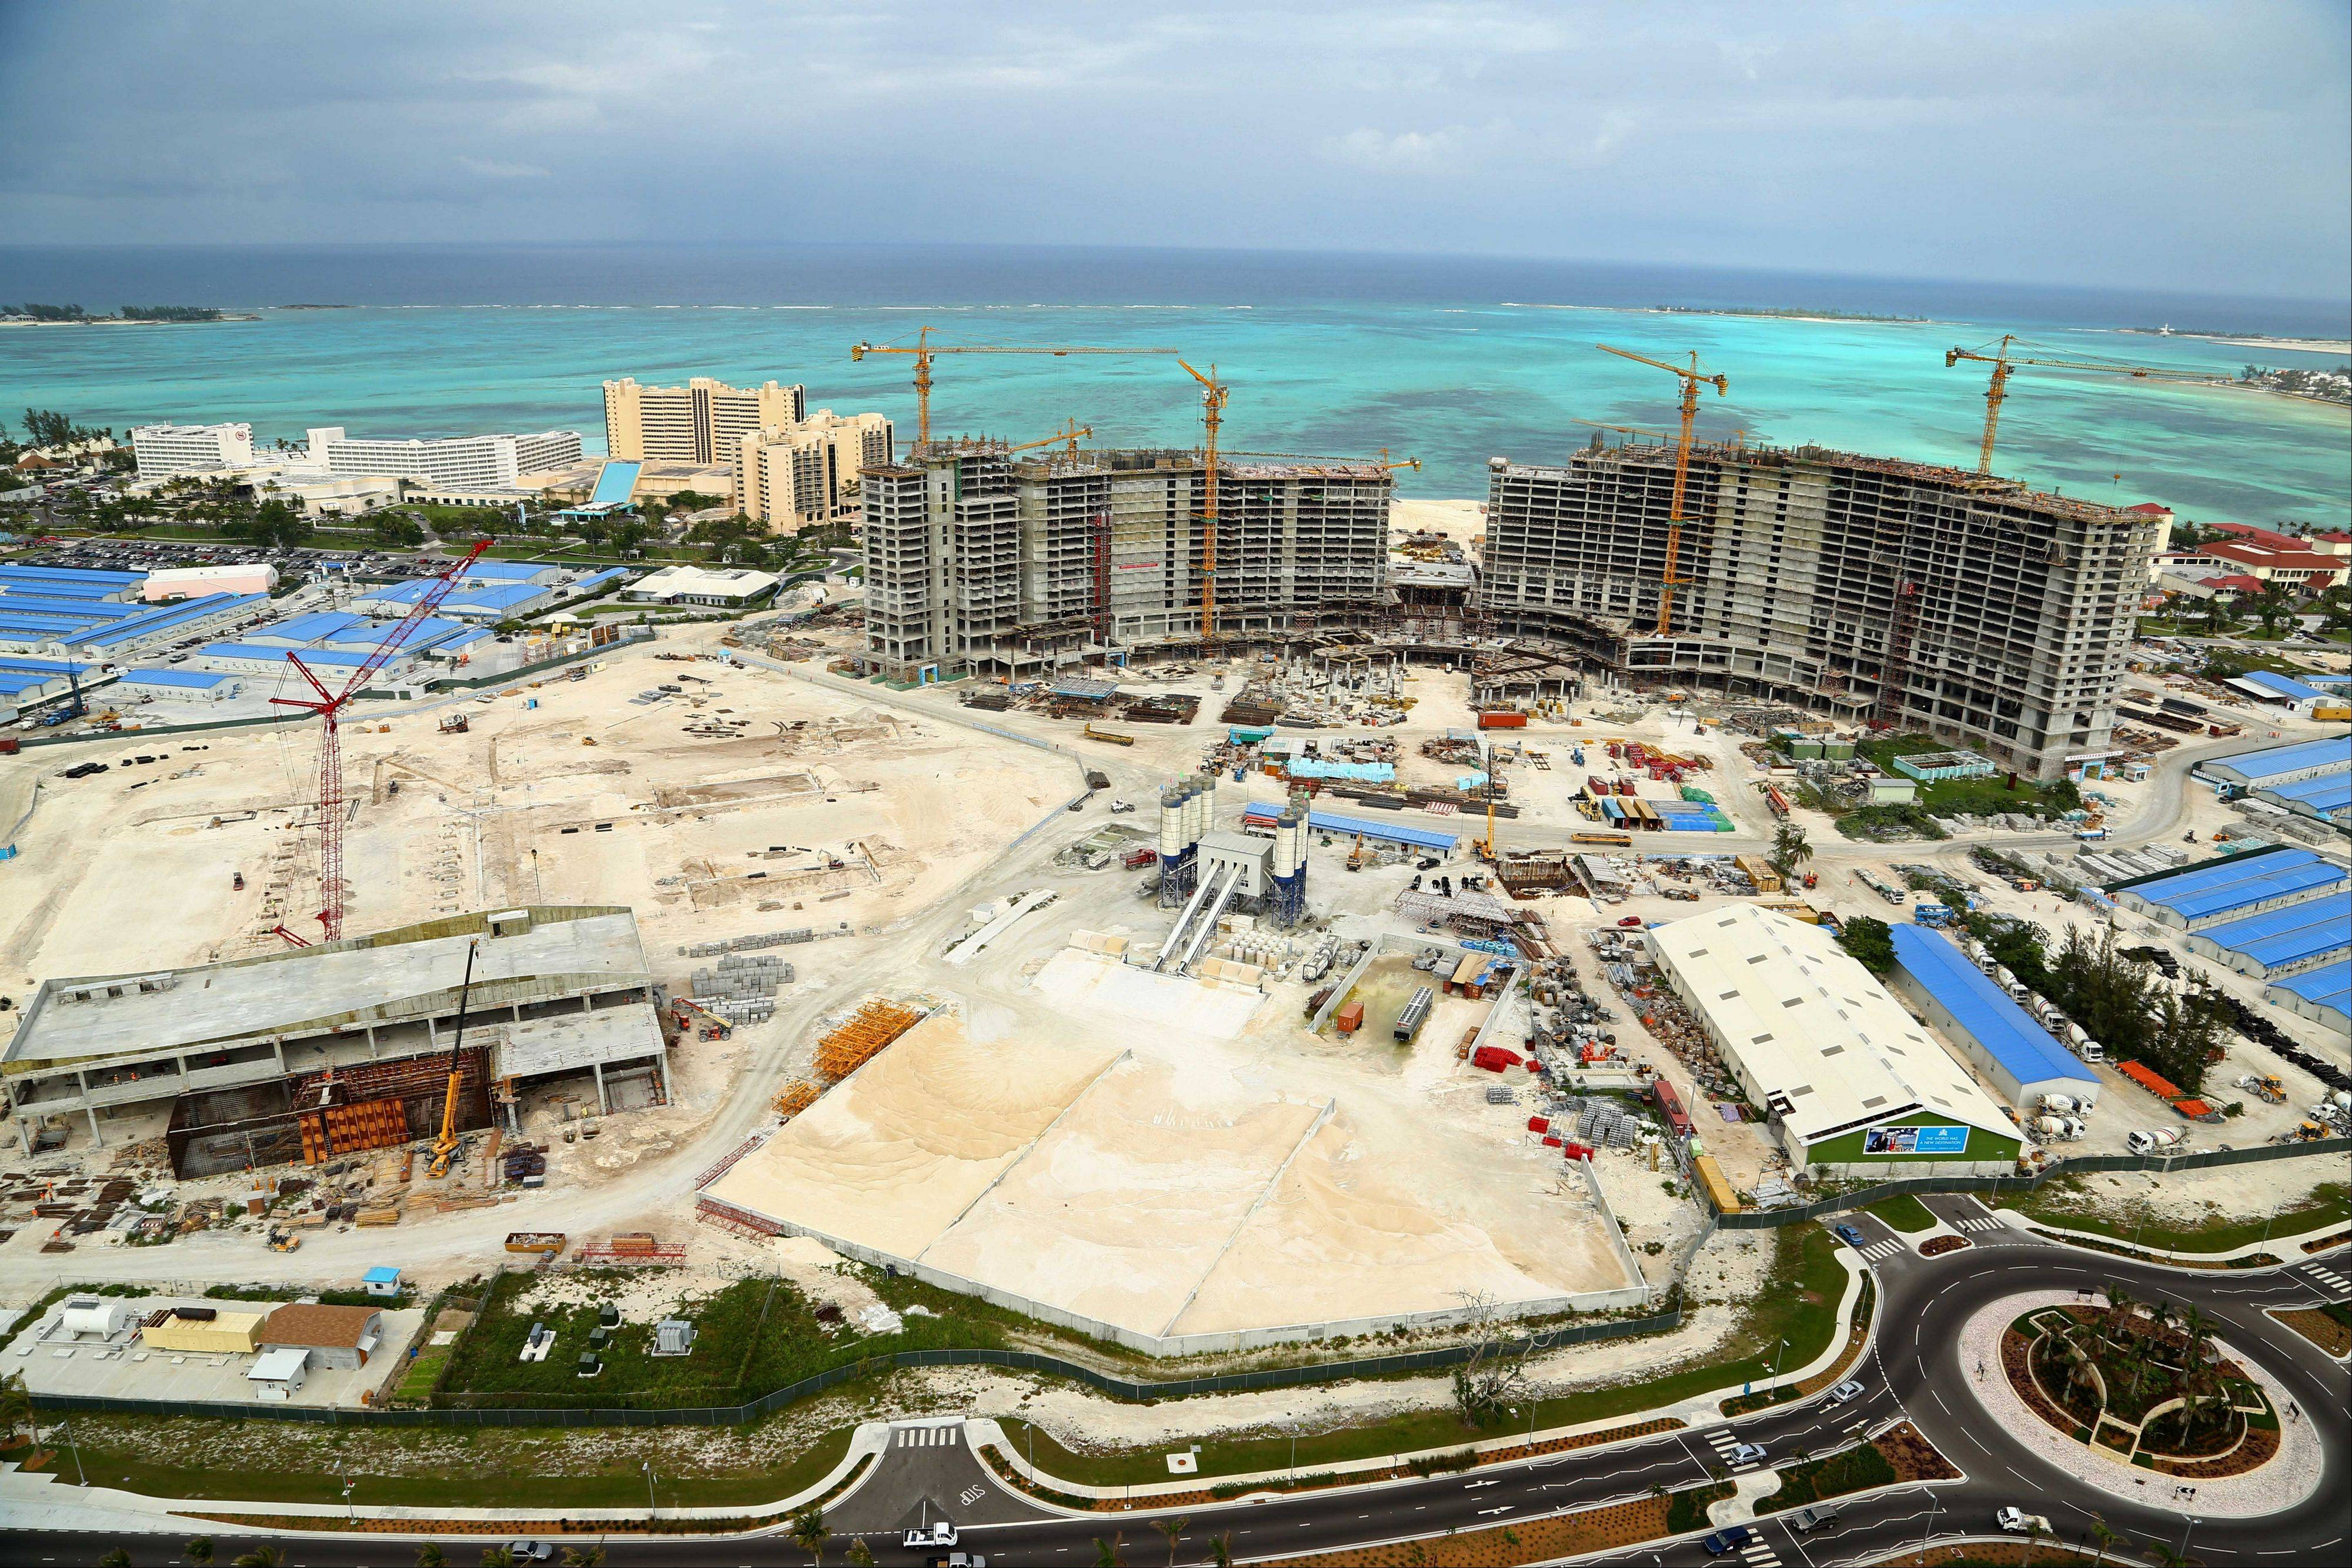 Construction continues on the Baha Mar resort on the beach on New Providence island, Bahamas. The project will add thousands of hotel rooms not far from the islands' biggest resort, the Atlantis. Baha Mar has opened sales offices all over Asia to promote and presell hundreds of pricey condos, hoping to imprint new travel habits on a continent that's traditionally spent beach vacations in Southeast Asia. It is also working with the Bahamian government to open more consular offices in China to issue visas.